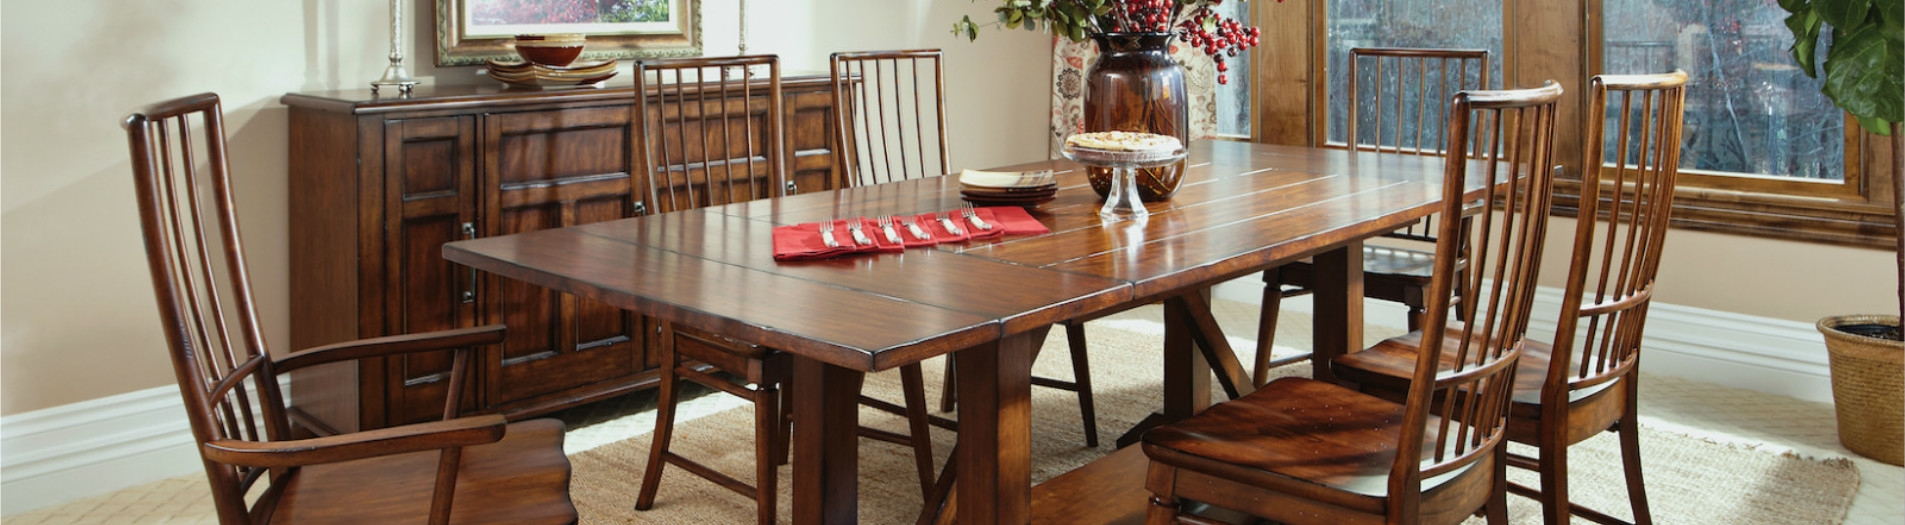 Exceptional Home   Turn Key Furniture Rentals